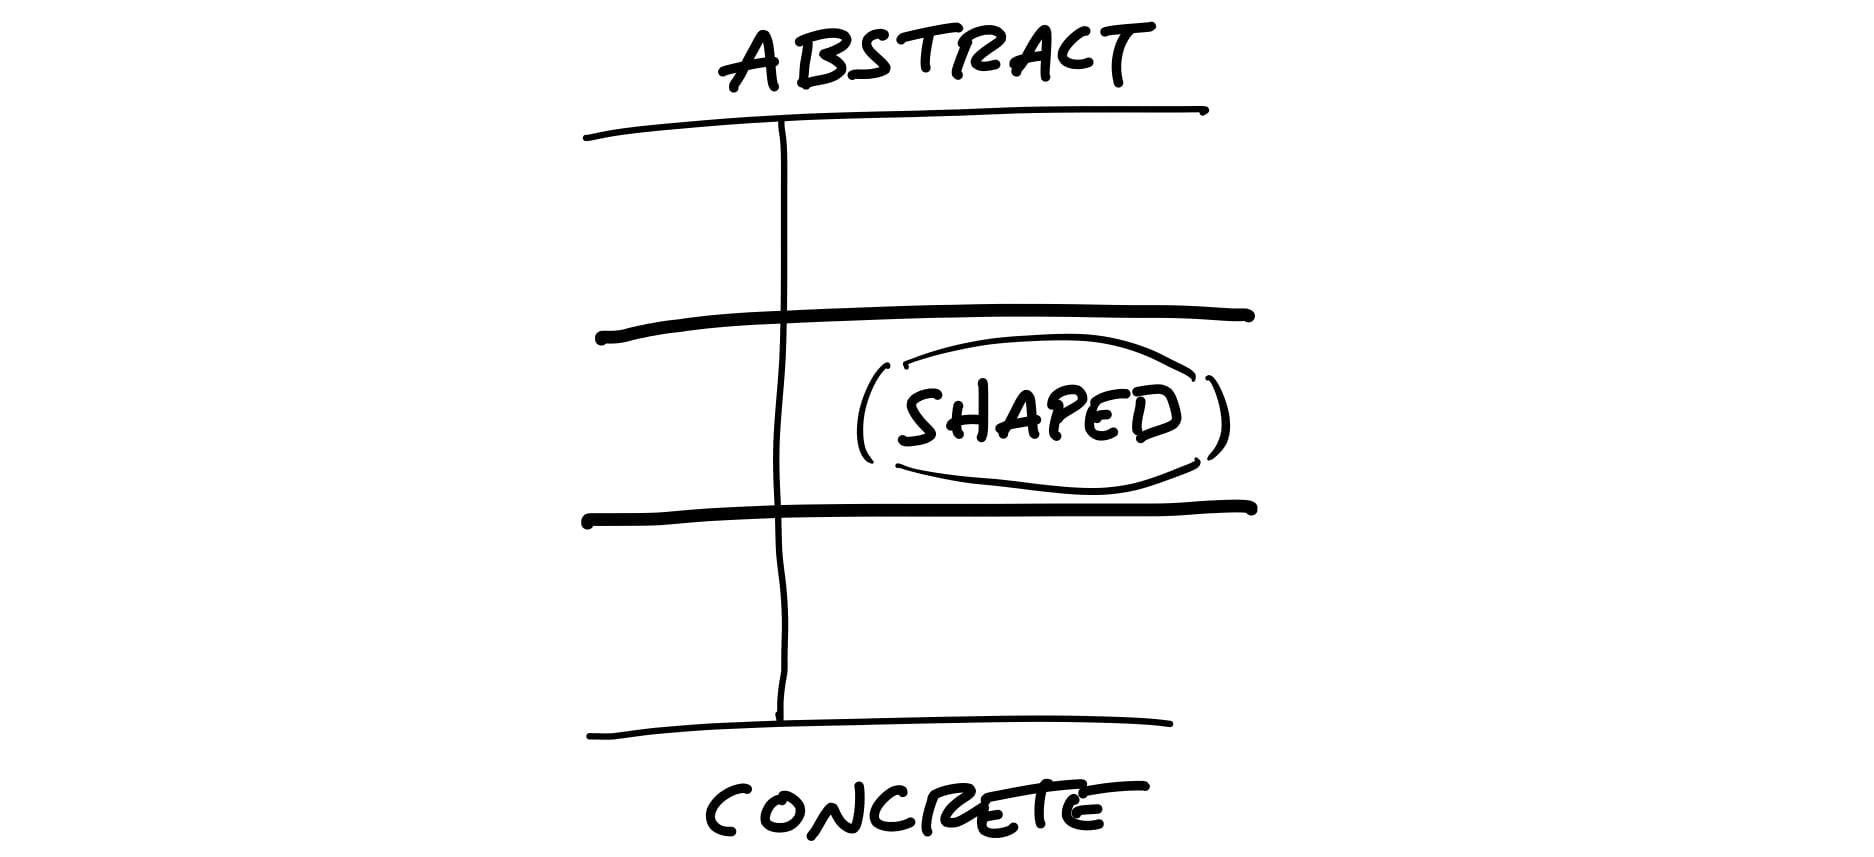 A vertical axis marked Abstract at the top and Concrete at the bottom. In the middle a zone is marked Shaped.